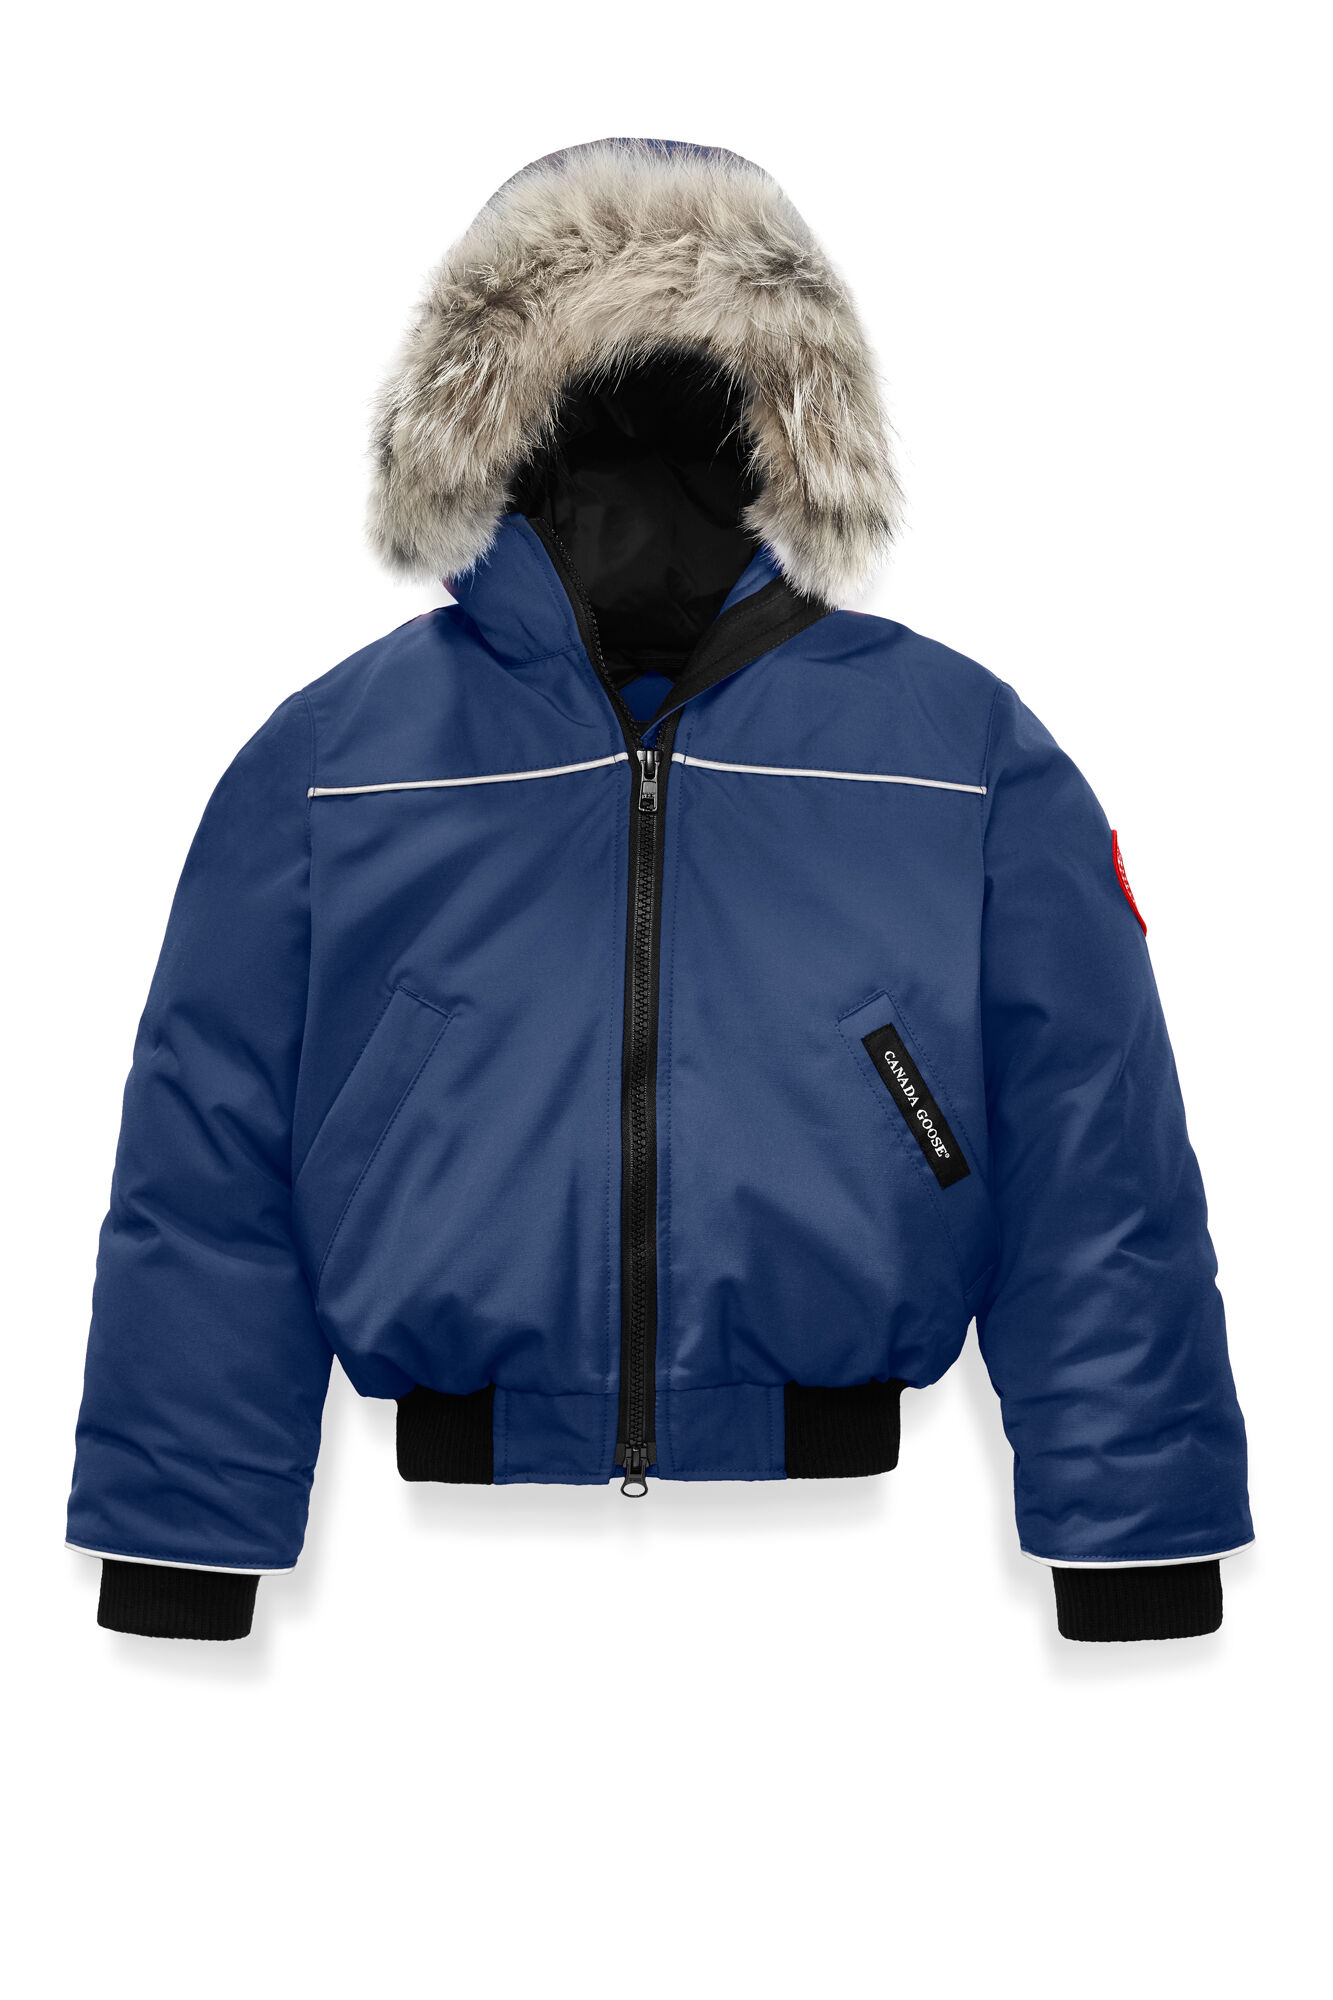 Canada Goose kids replica discounts - Grizzly Bomber | Canada Goose? | Canada Goose?